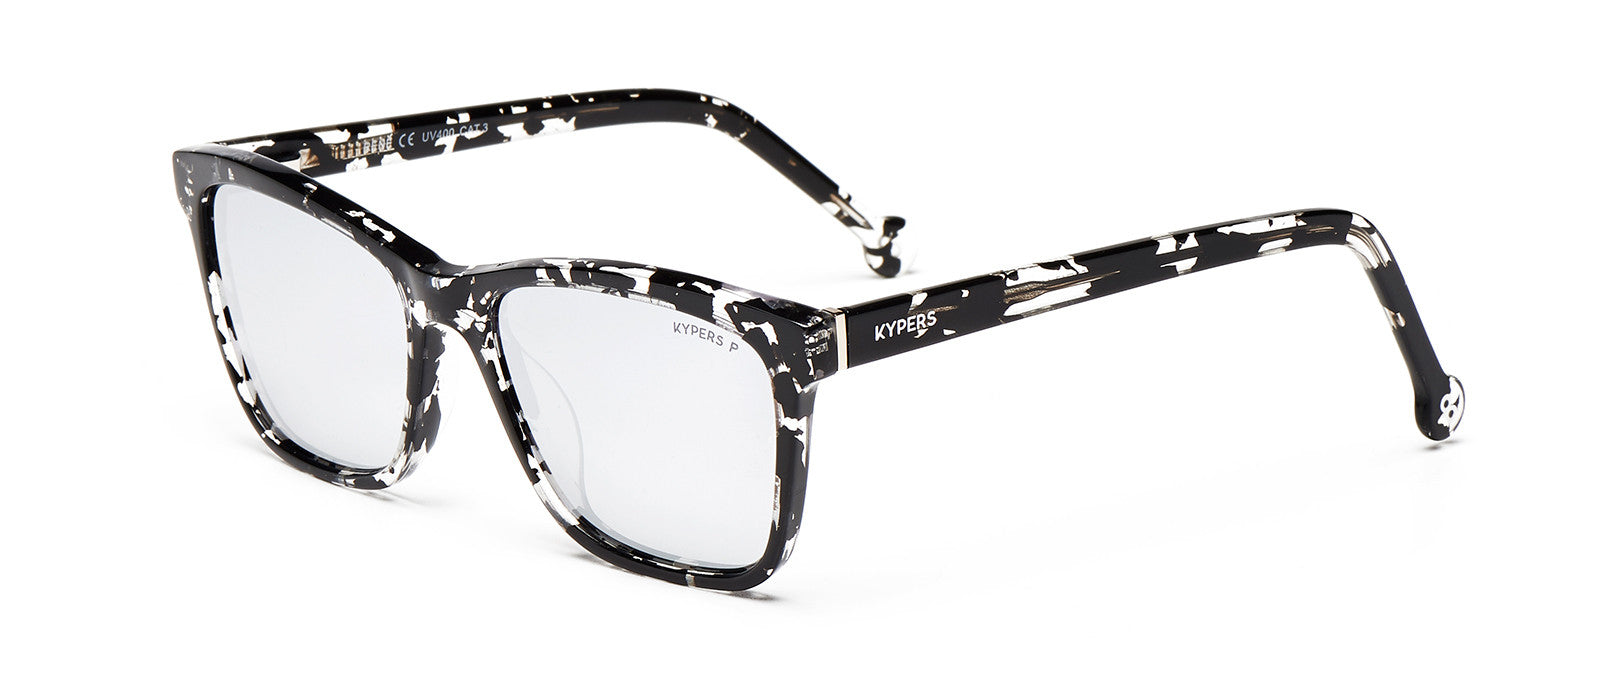 KYPERS sunglasses model RENÉ RE002 with blue & cristal demy frame and gradient grey lens